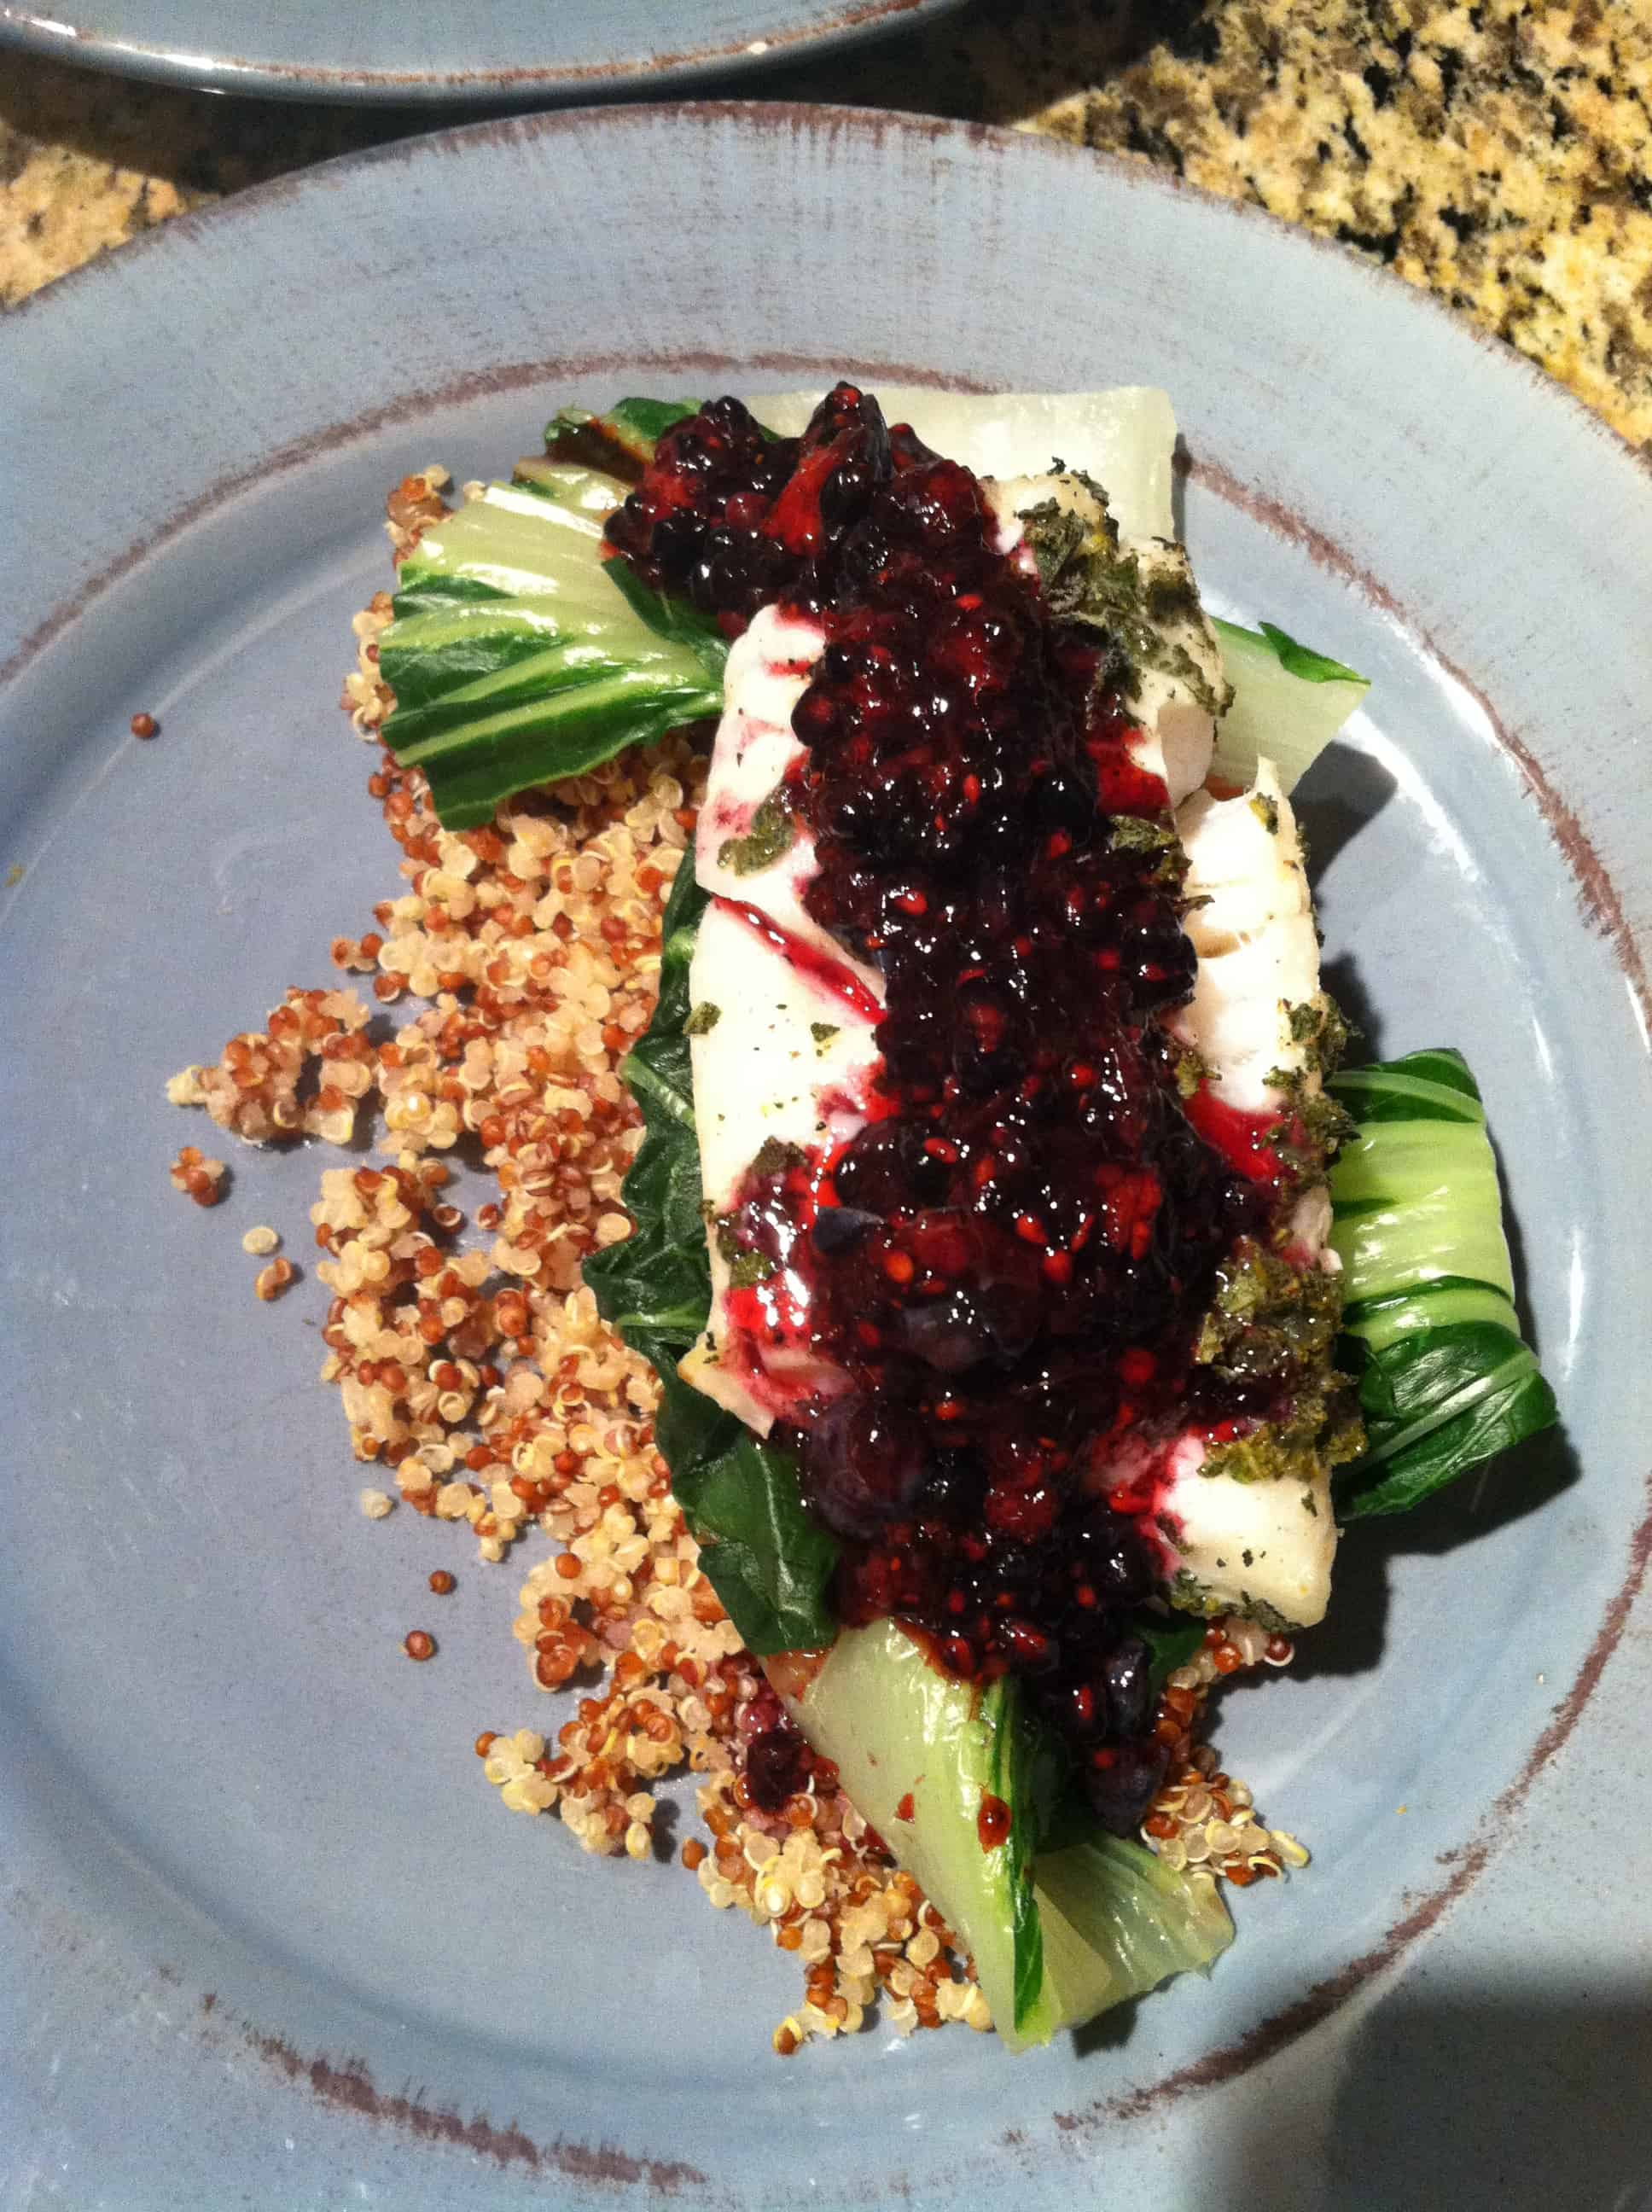 Sage Crusted Baked Cod with Blackberry Coulis